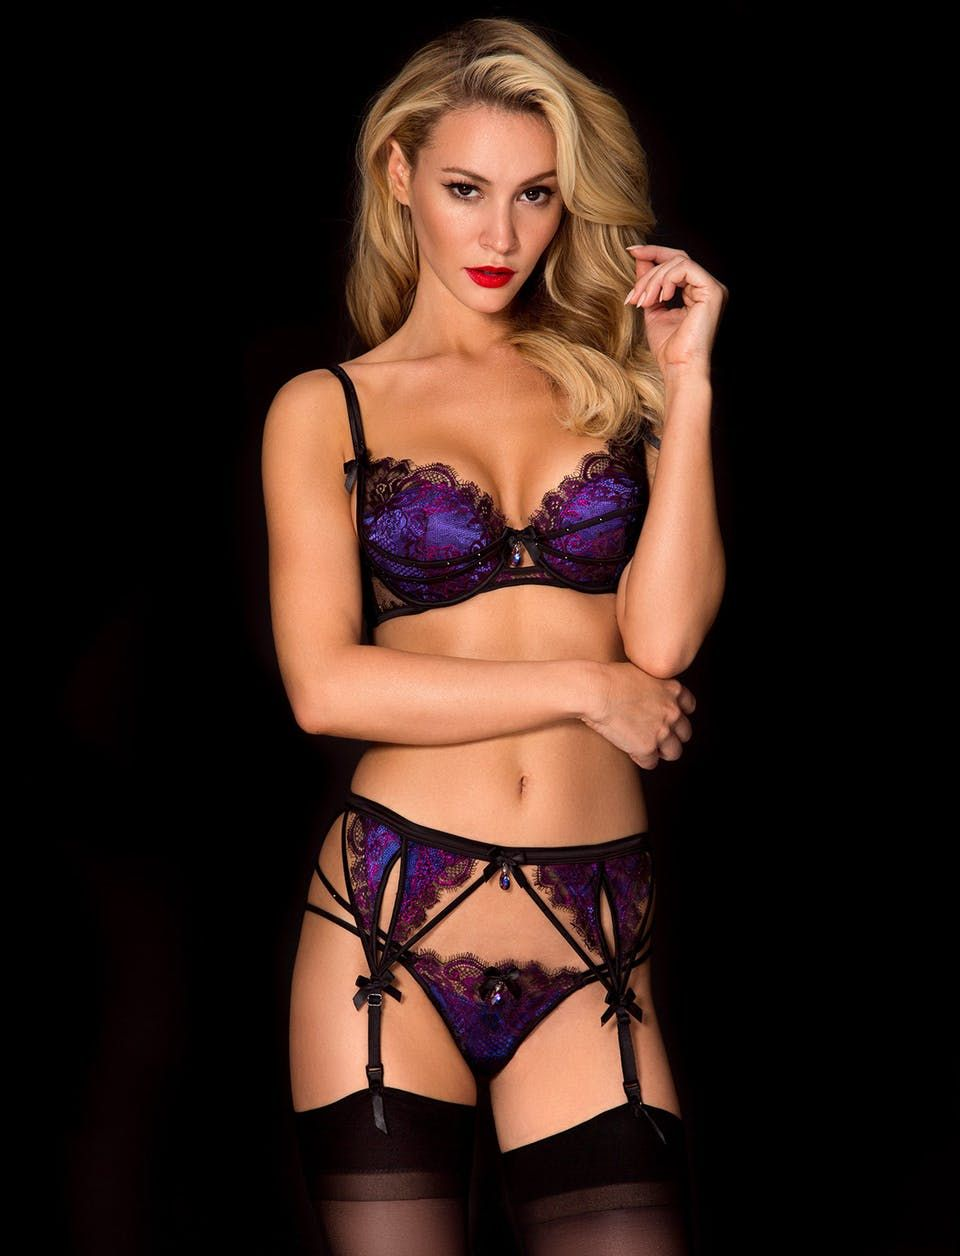 50271af97d312 Brittney Thong Suspender Set | Shop Lingerie Honey Birdette ...